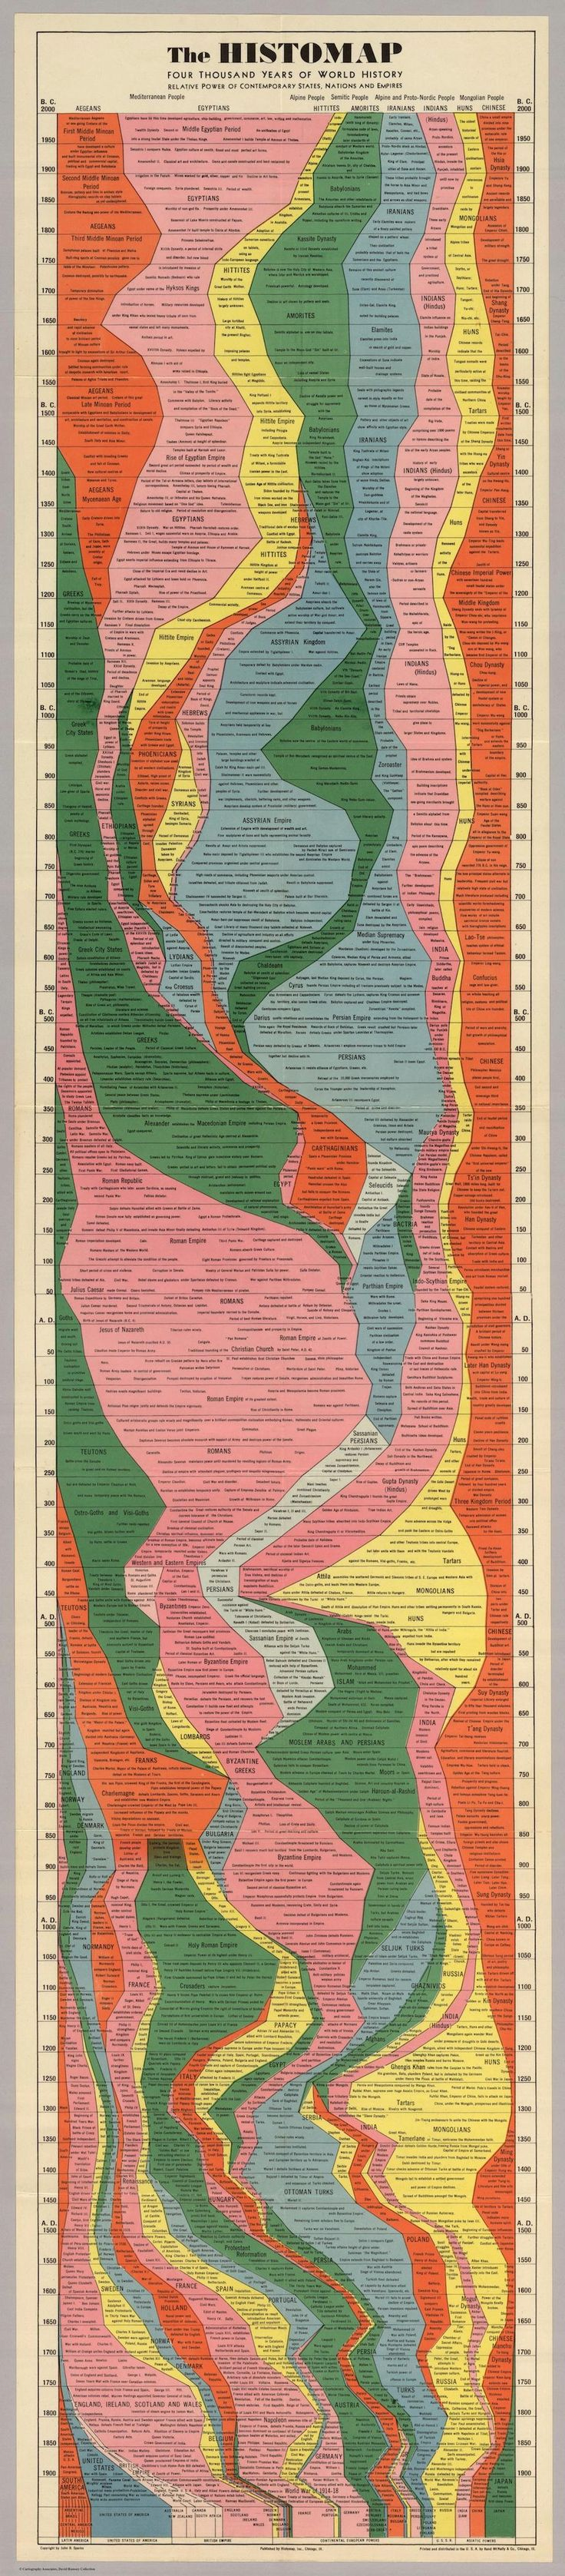 The HistoMap of the World